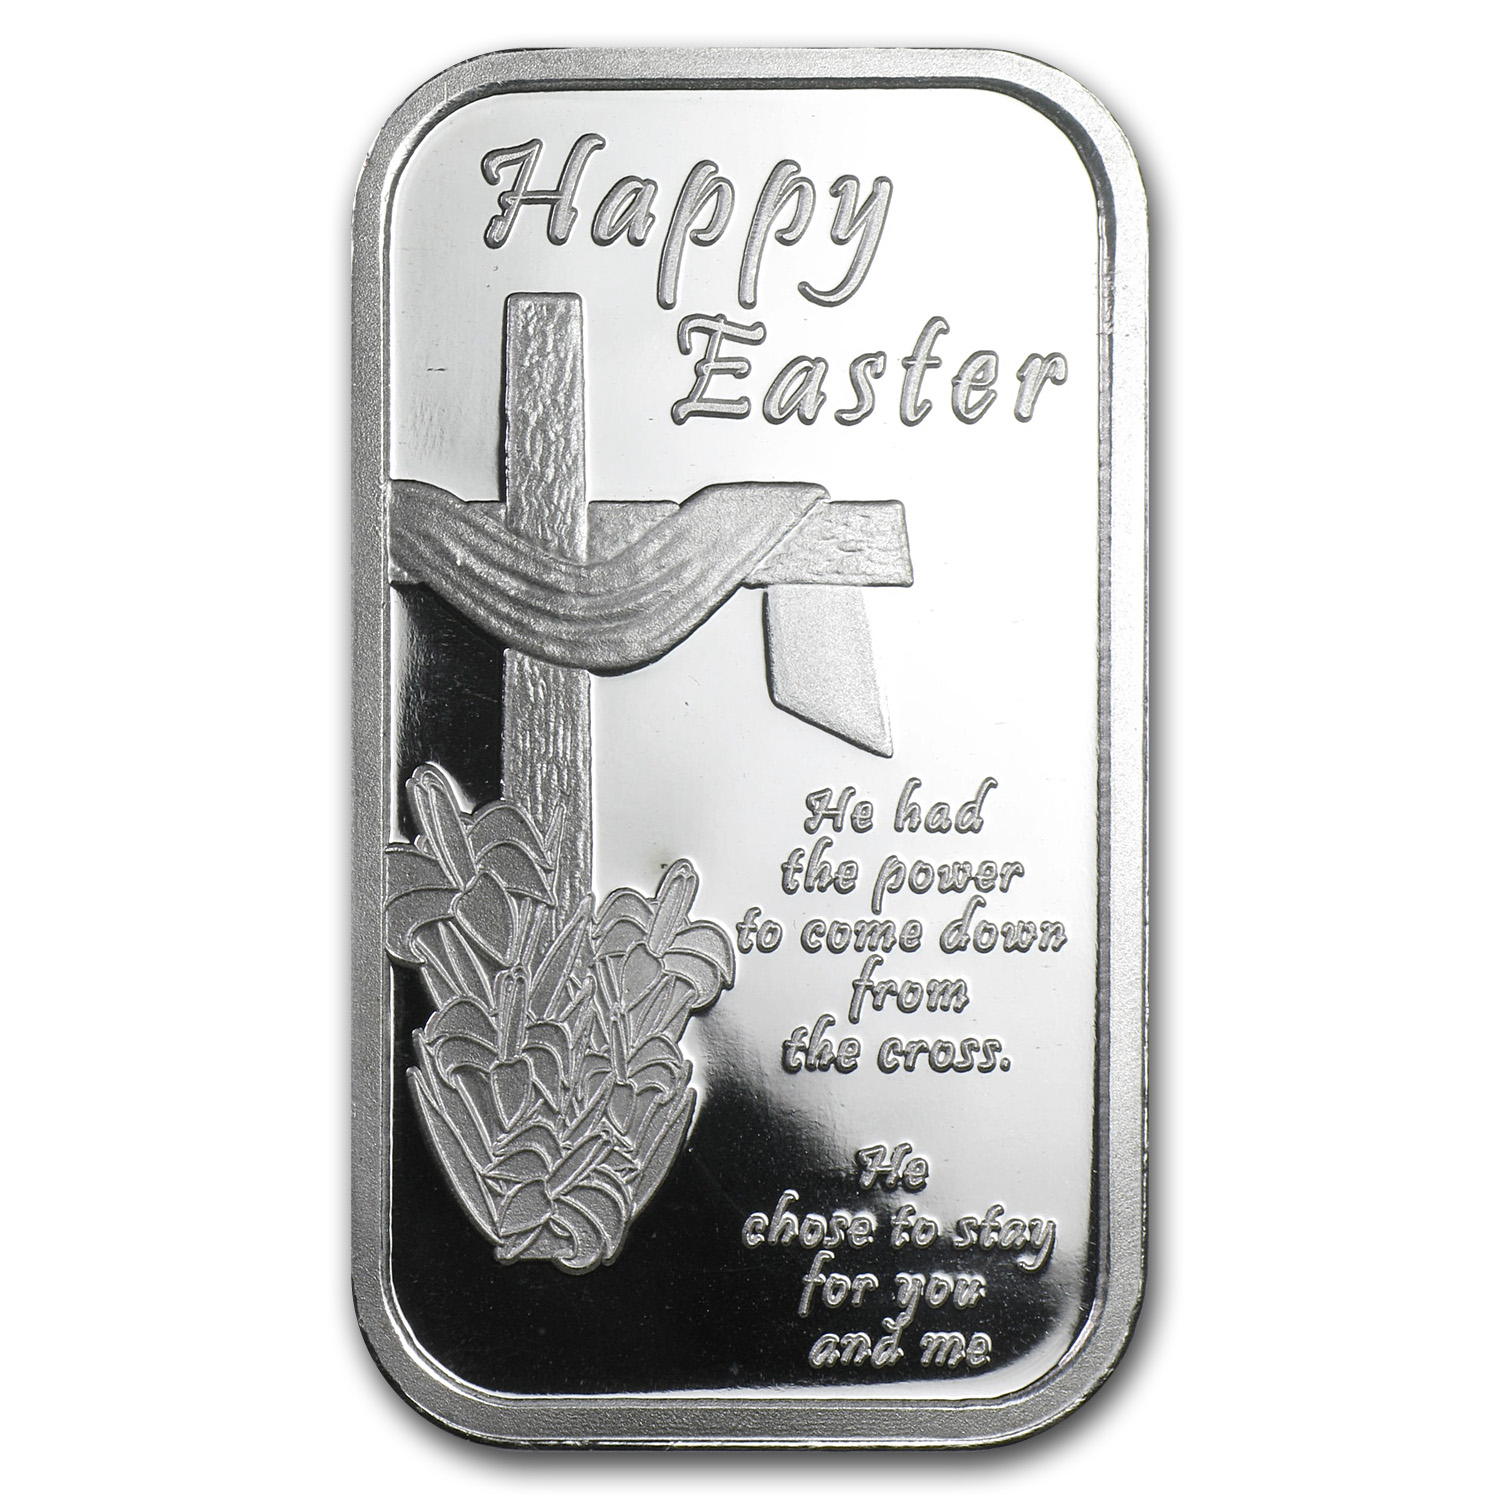 1 oz Silver Bars - 2014 Happy Easter Cross (w/Box & Capsule)